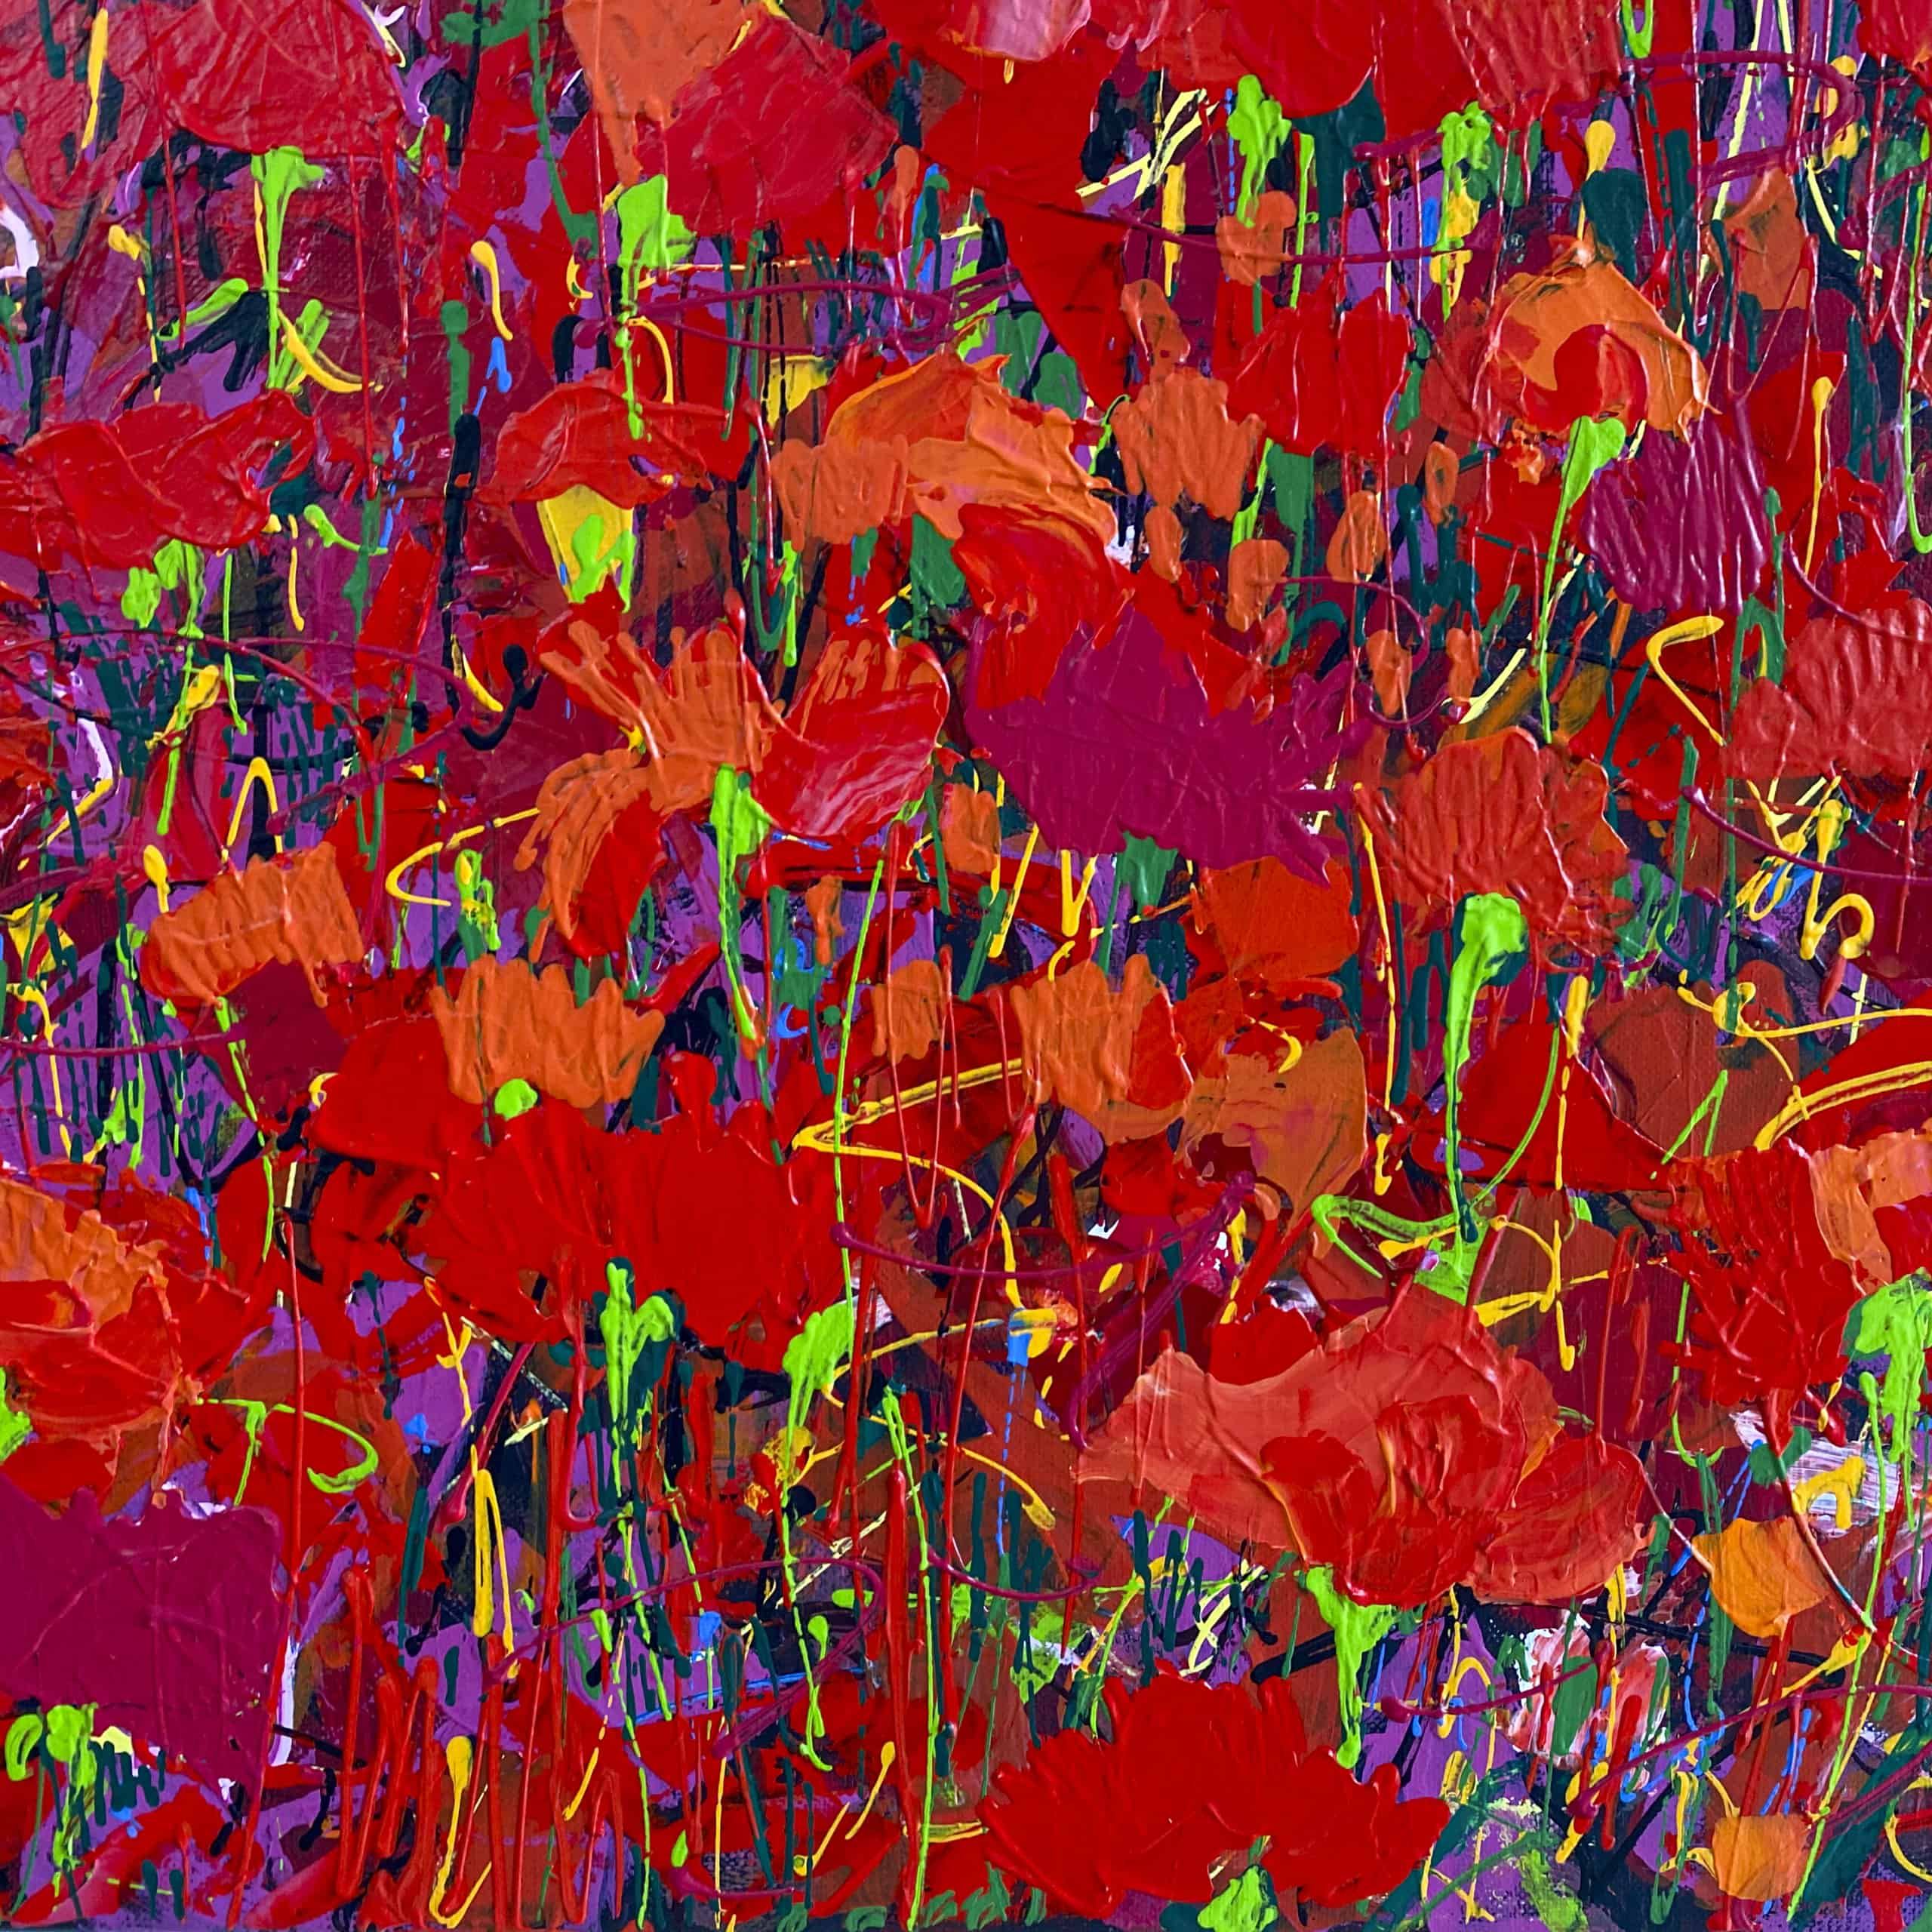 f7-poppies-2020-detail2